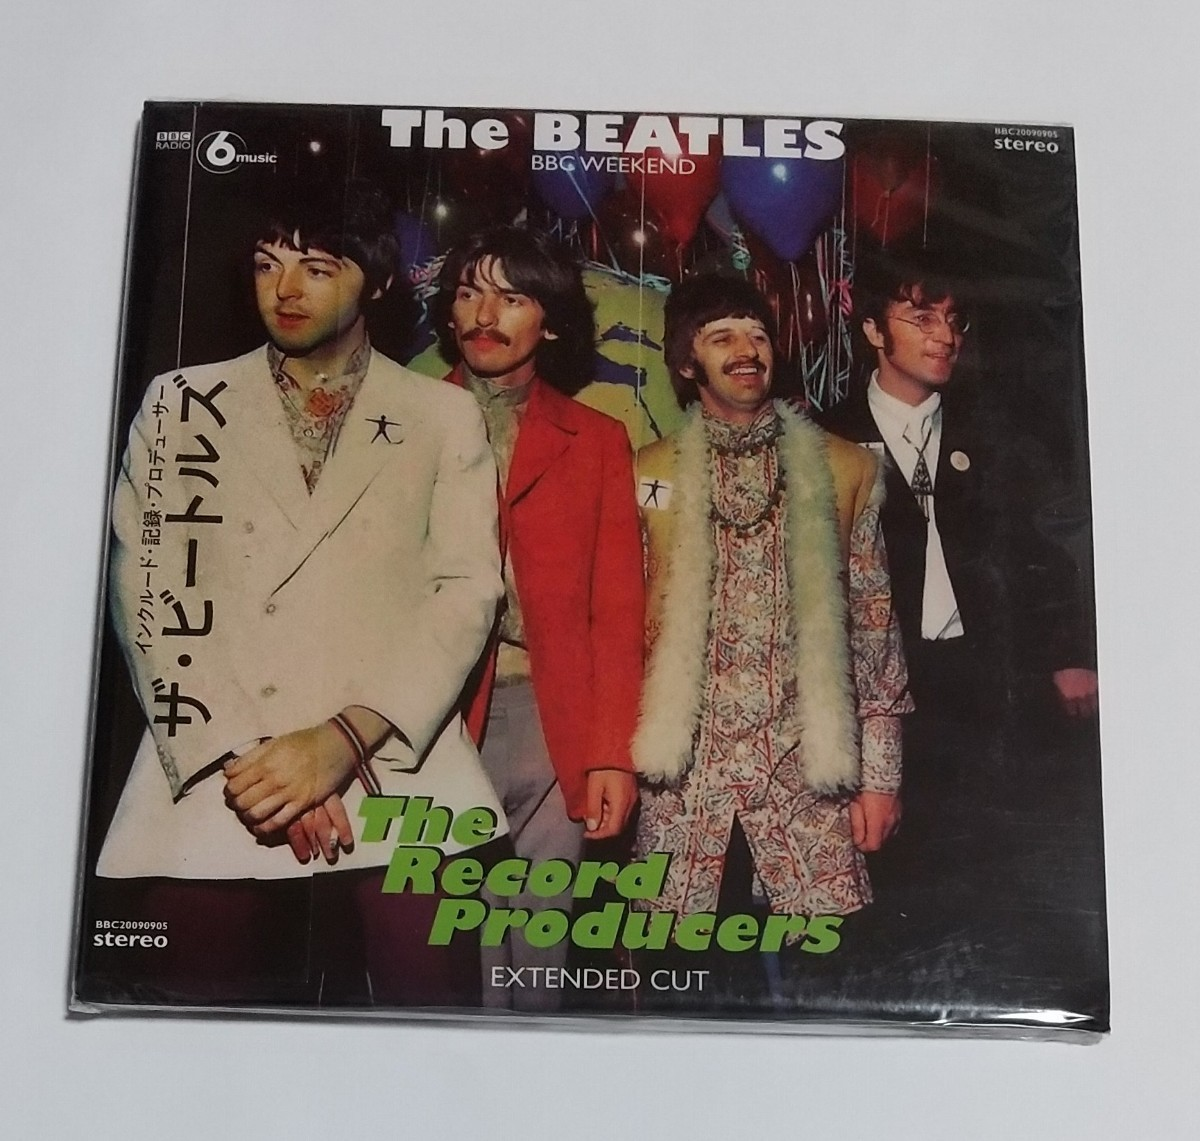 CD輸入盤リプロ盤 THE BEATLES / THE RECORD PRODUCERS EXTENDED CUT